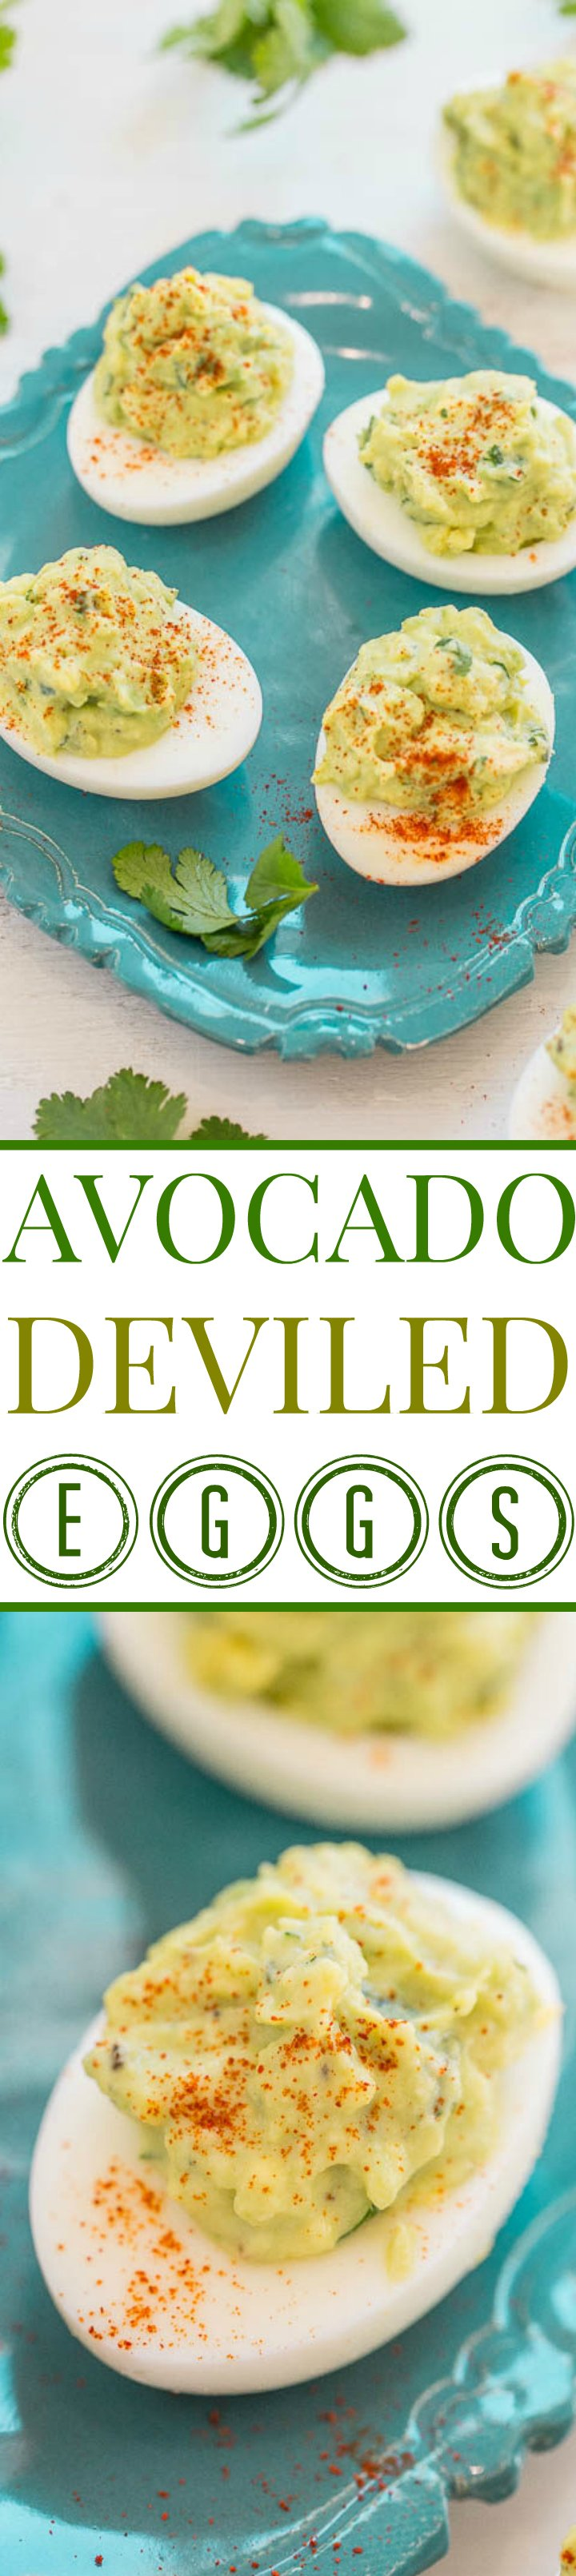 Avocado deviled eggs two picture collage with graphic title